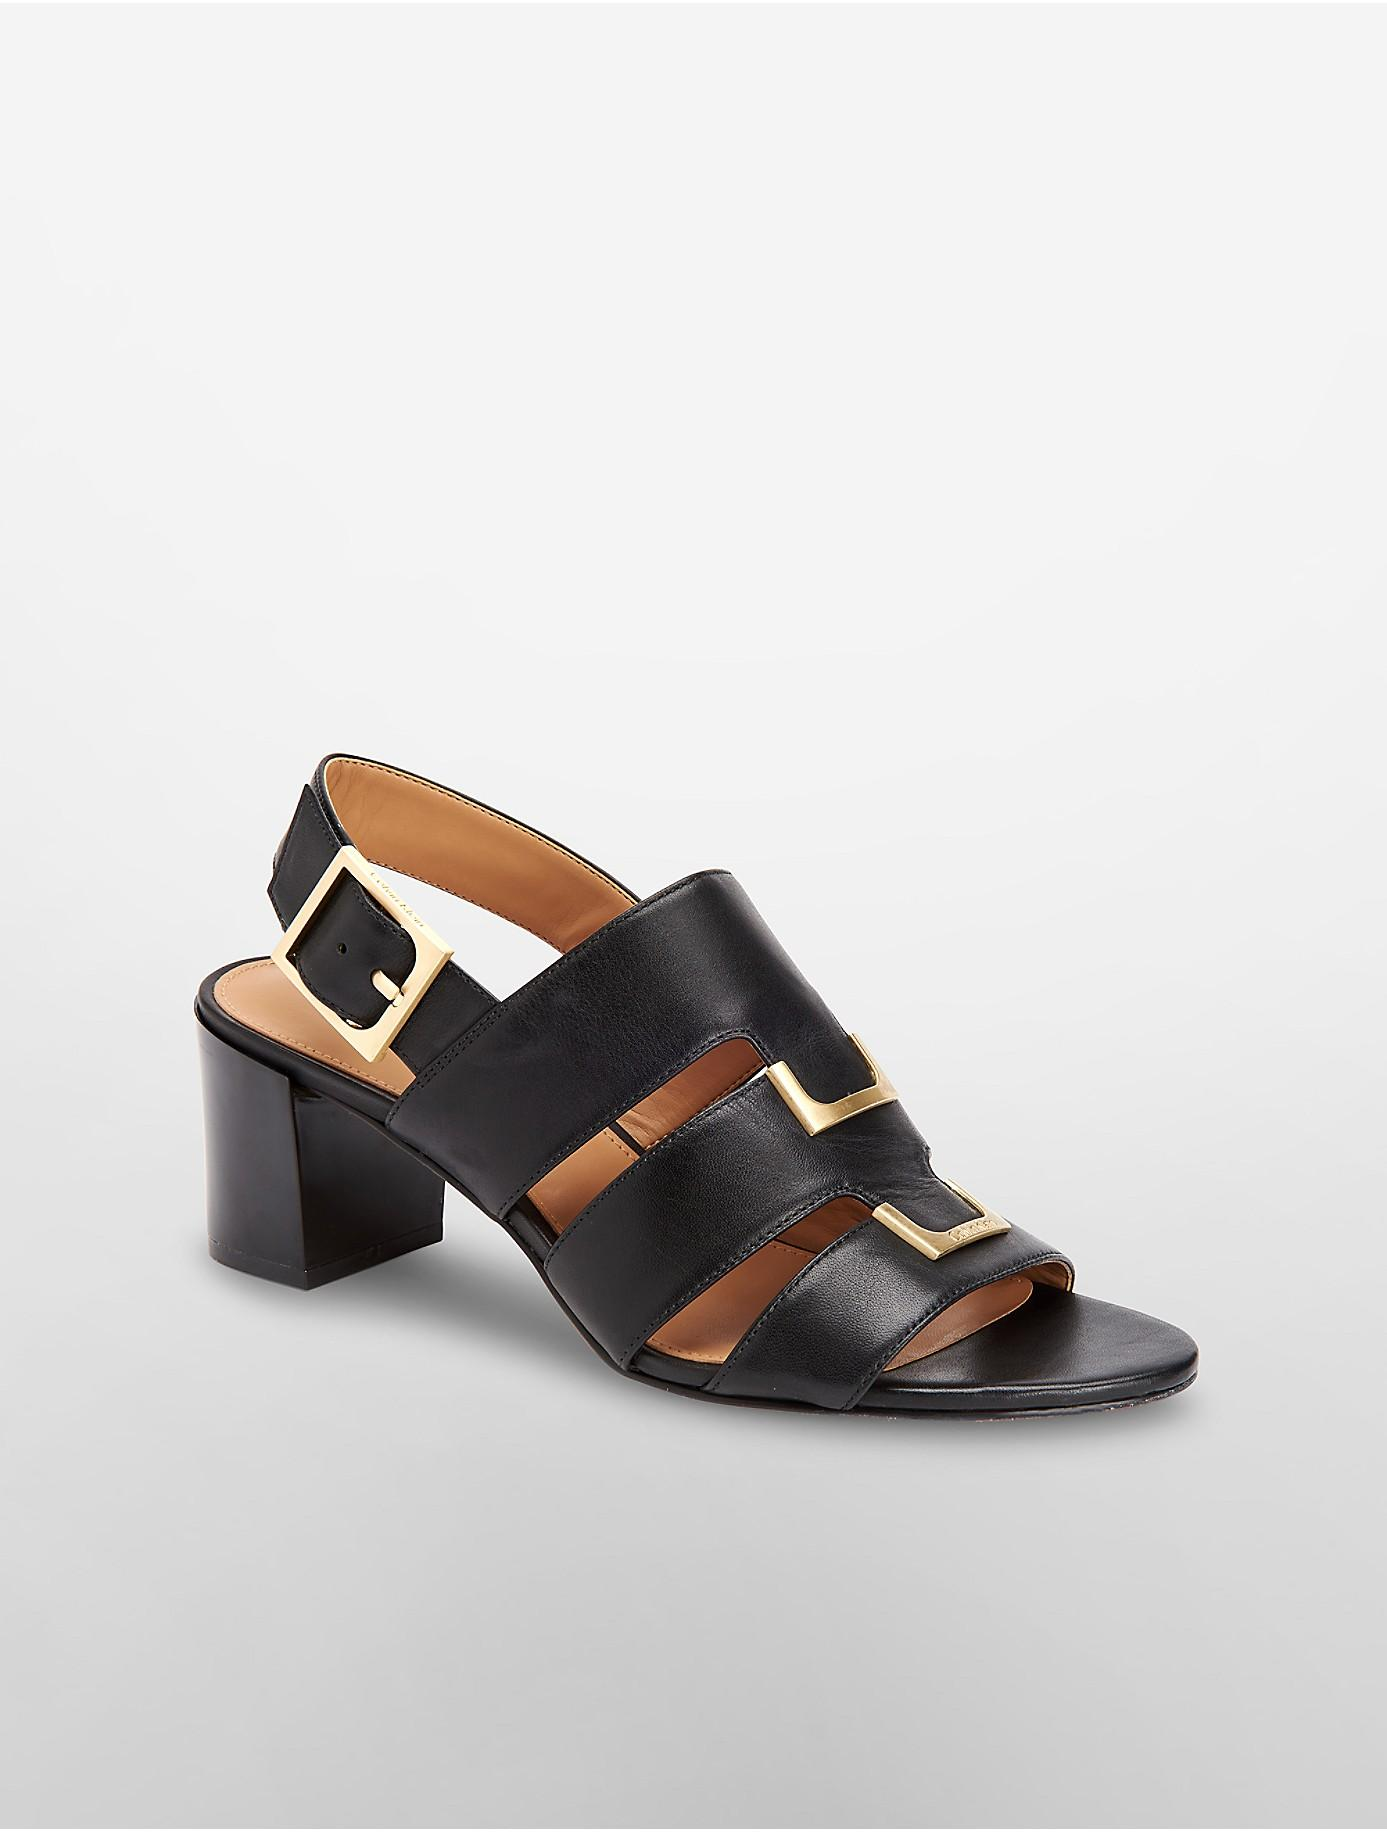 de39f84283c991 calvin klein black sandals calvin klein neda leather sandal in black lyst